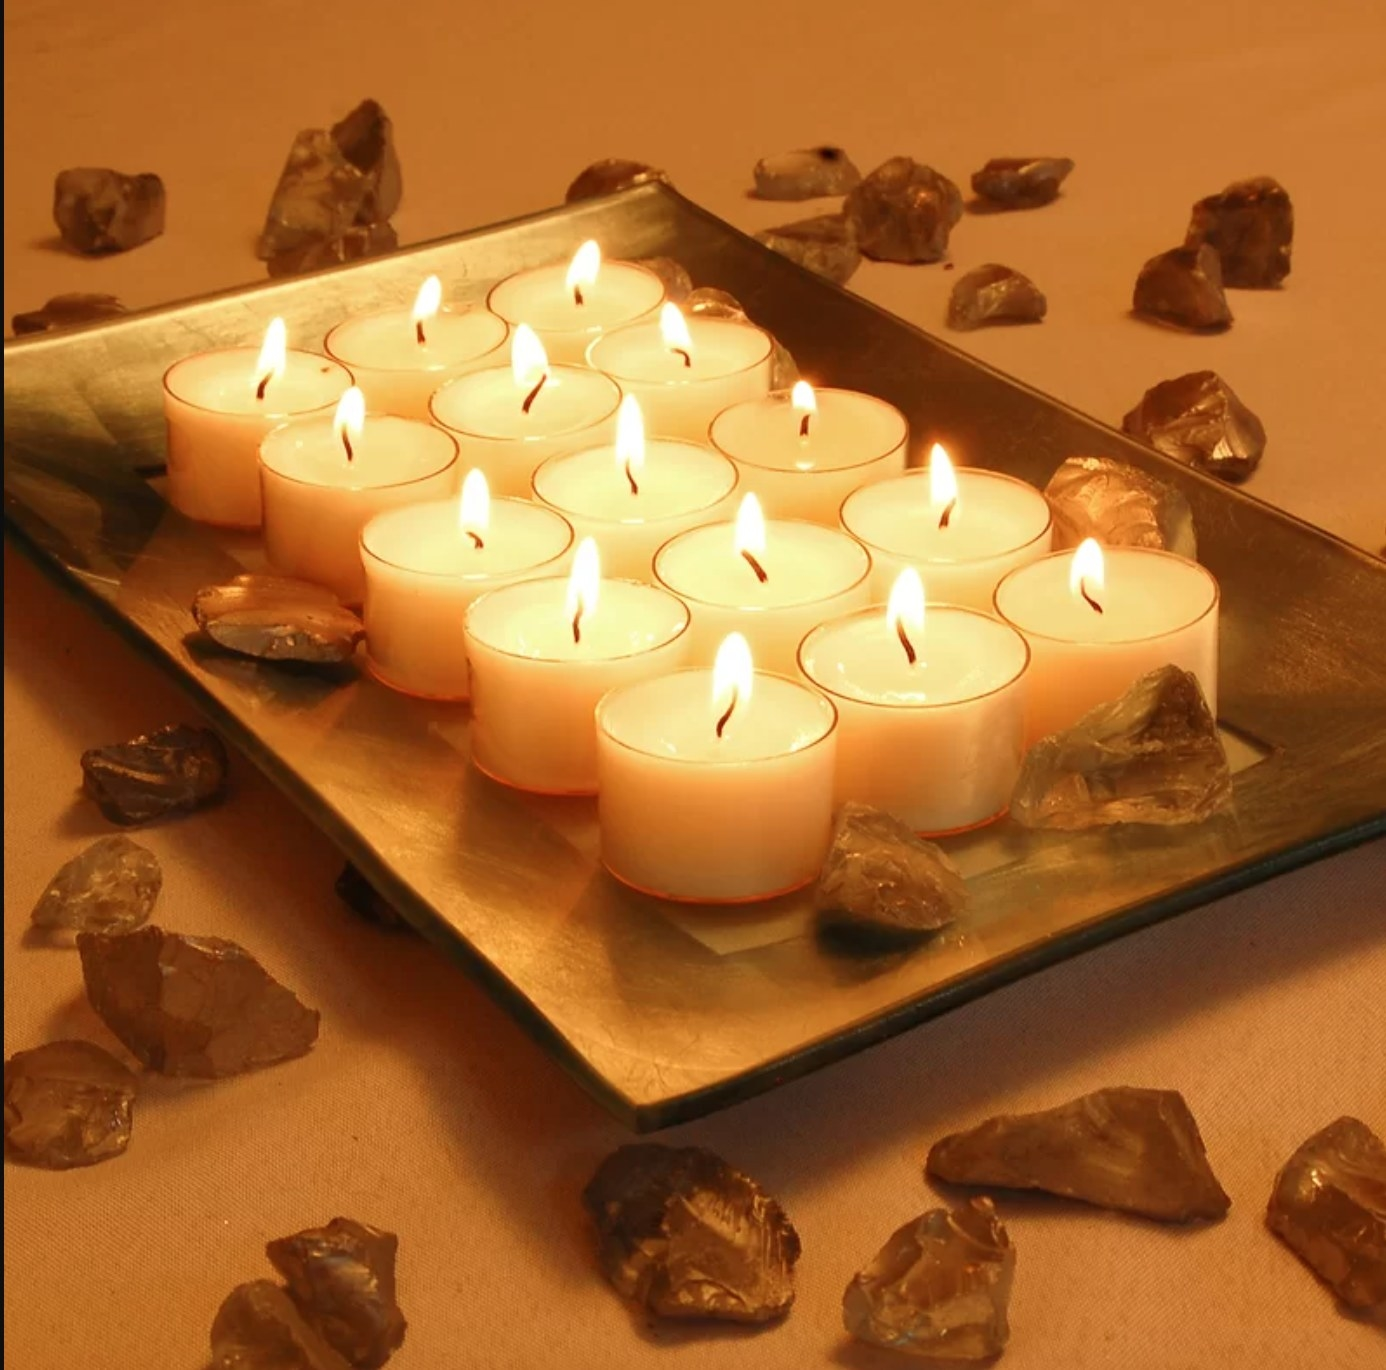 The set of 30 extended burn fall candles lit on a tray